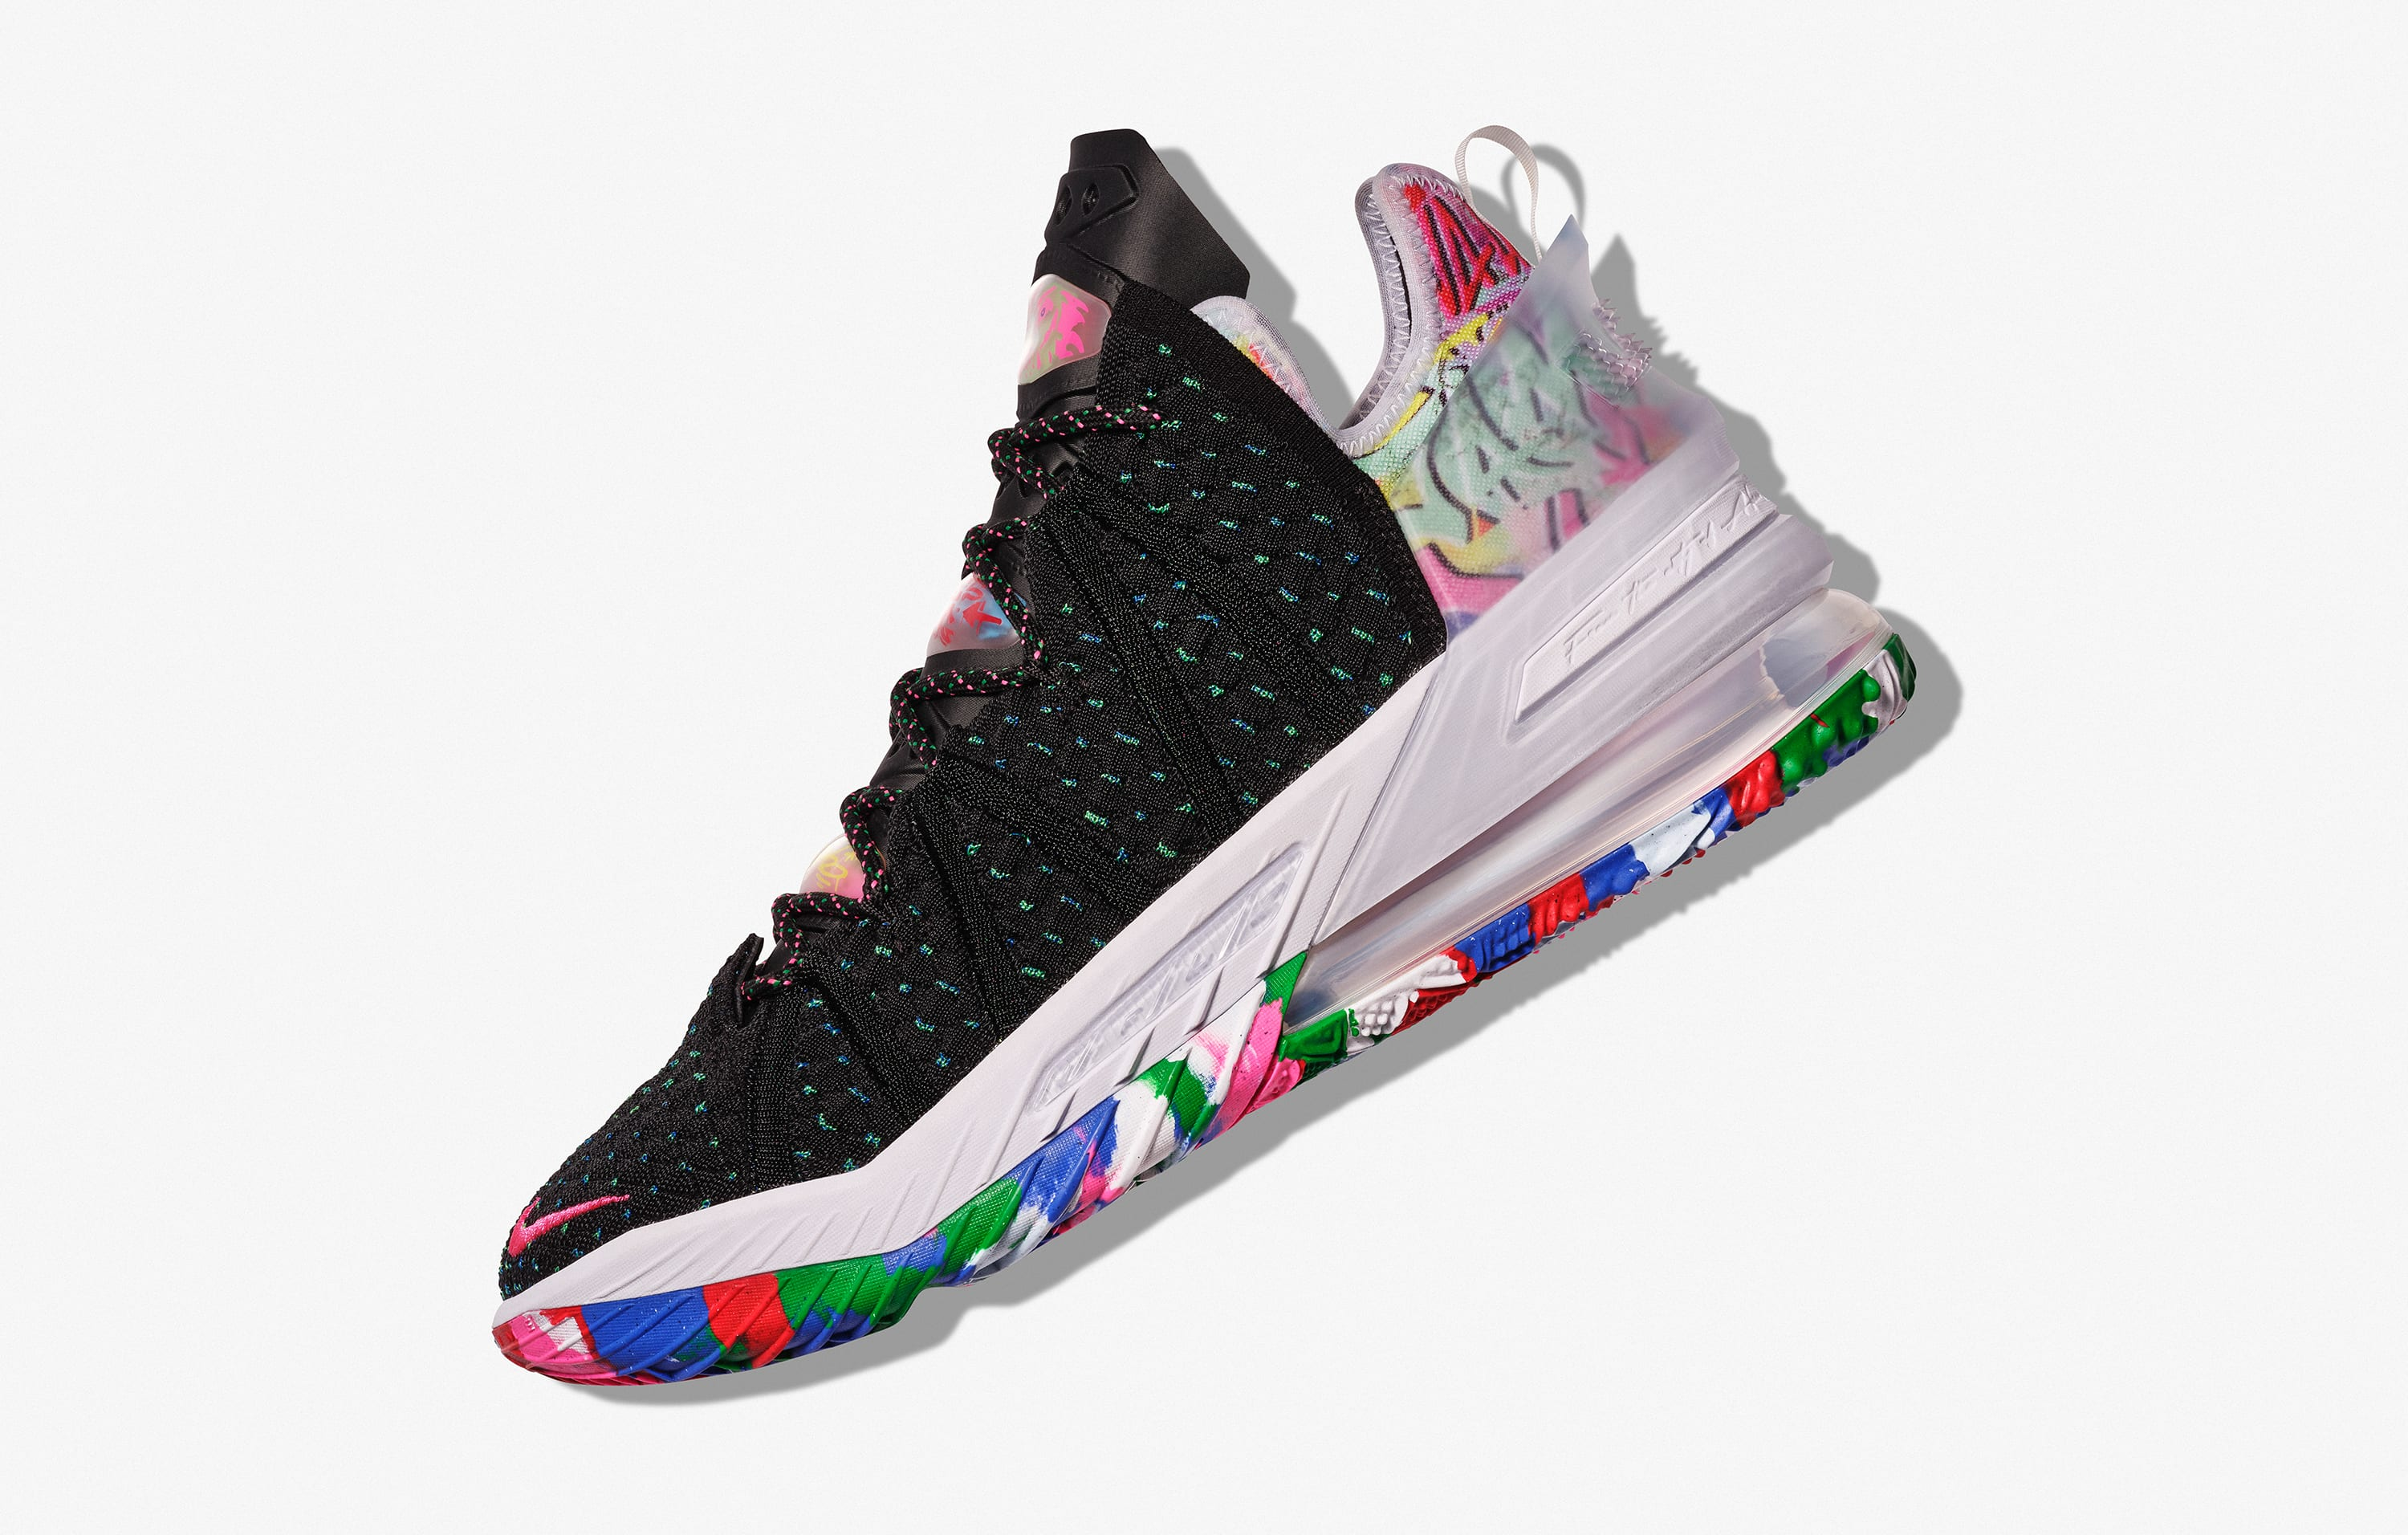 Nike LeBron 18 'Multicolor' Lateral